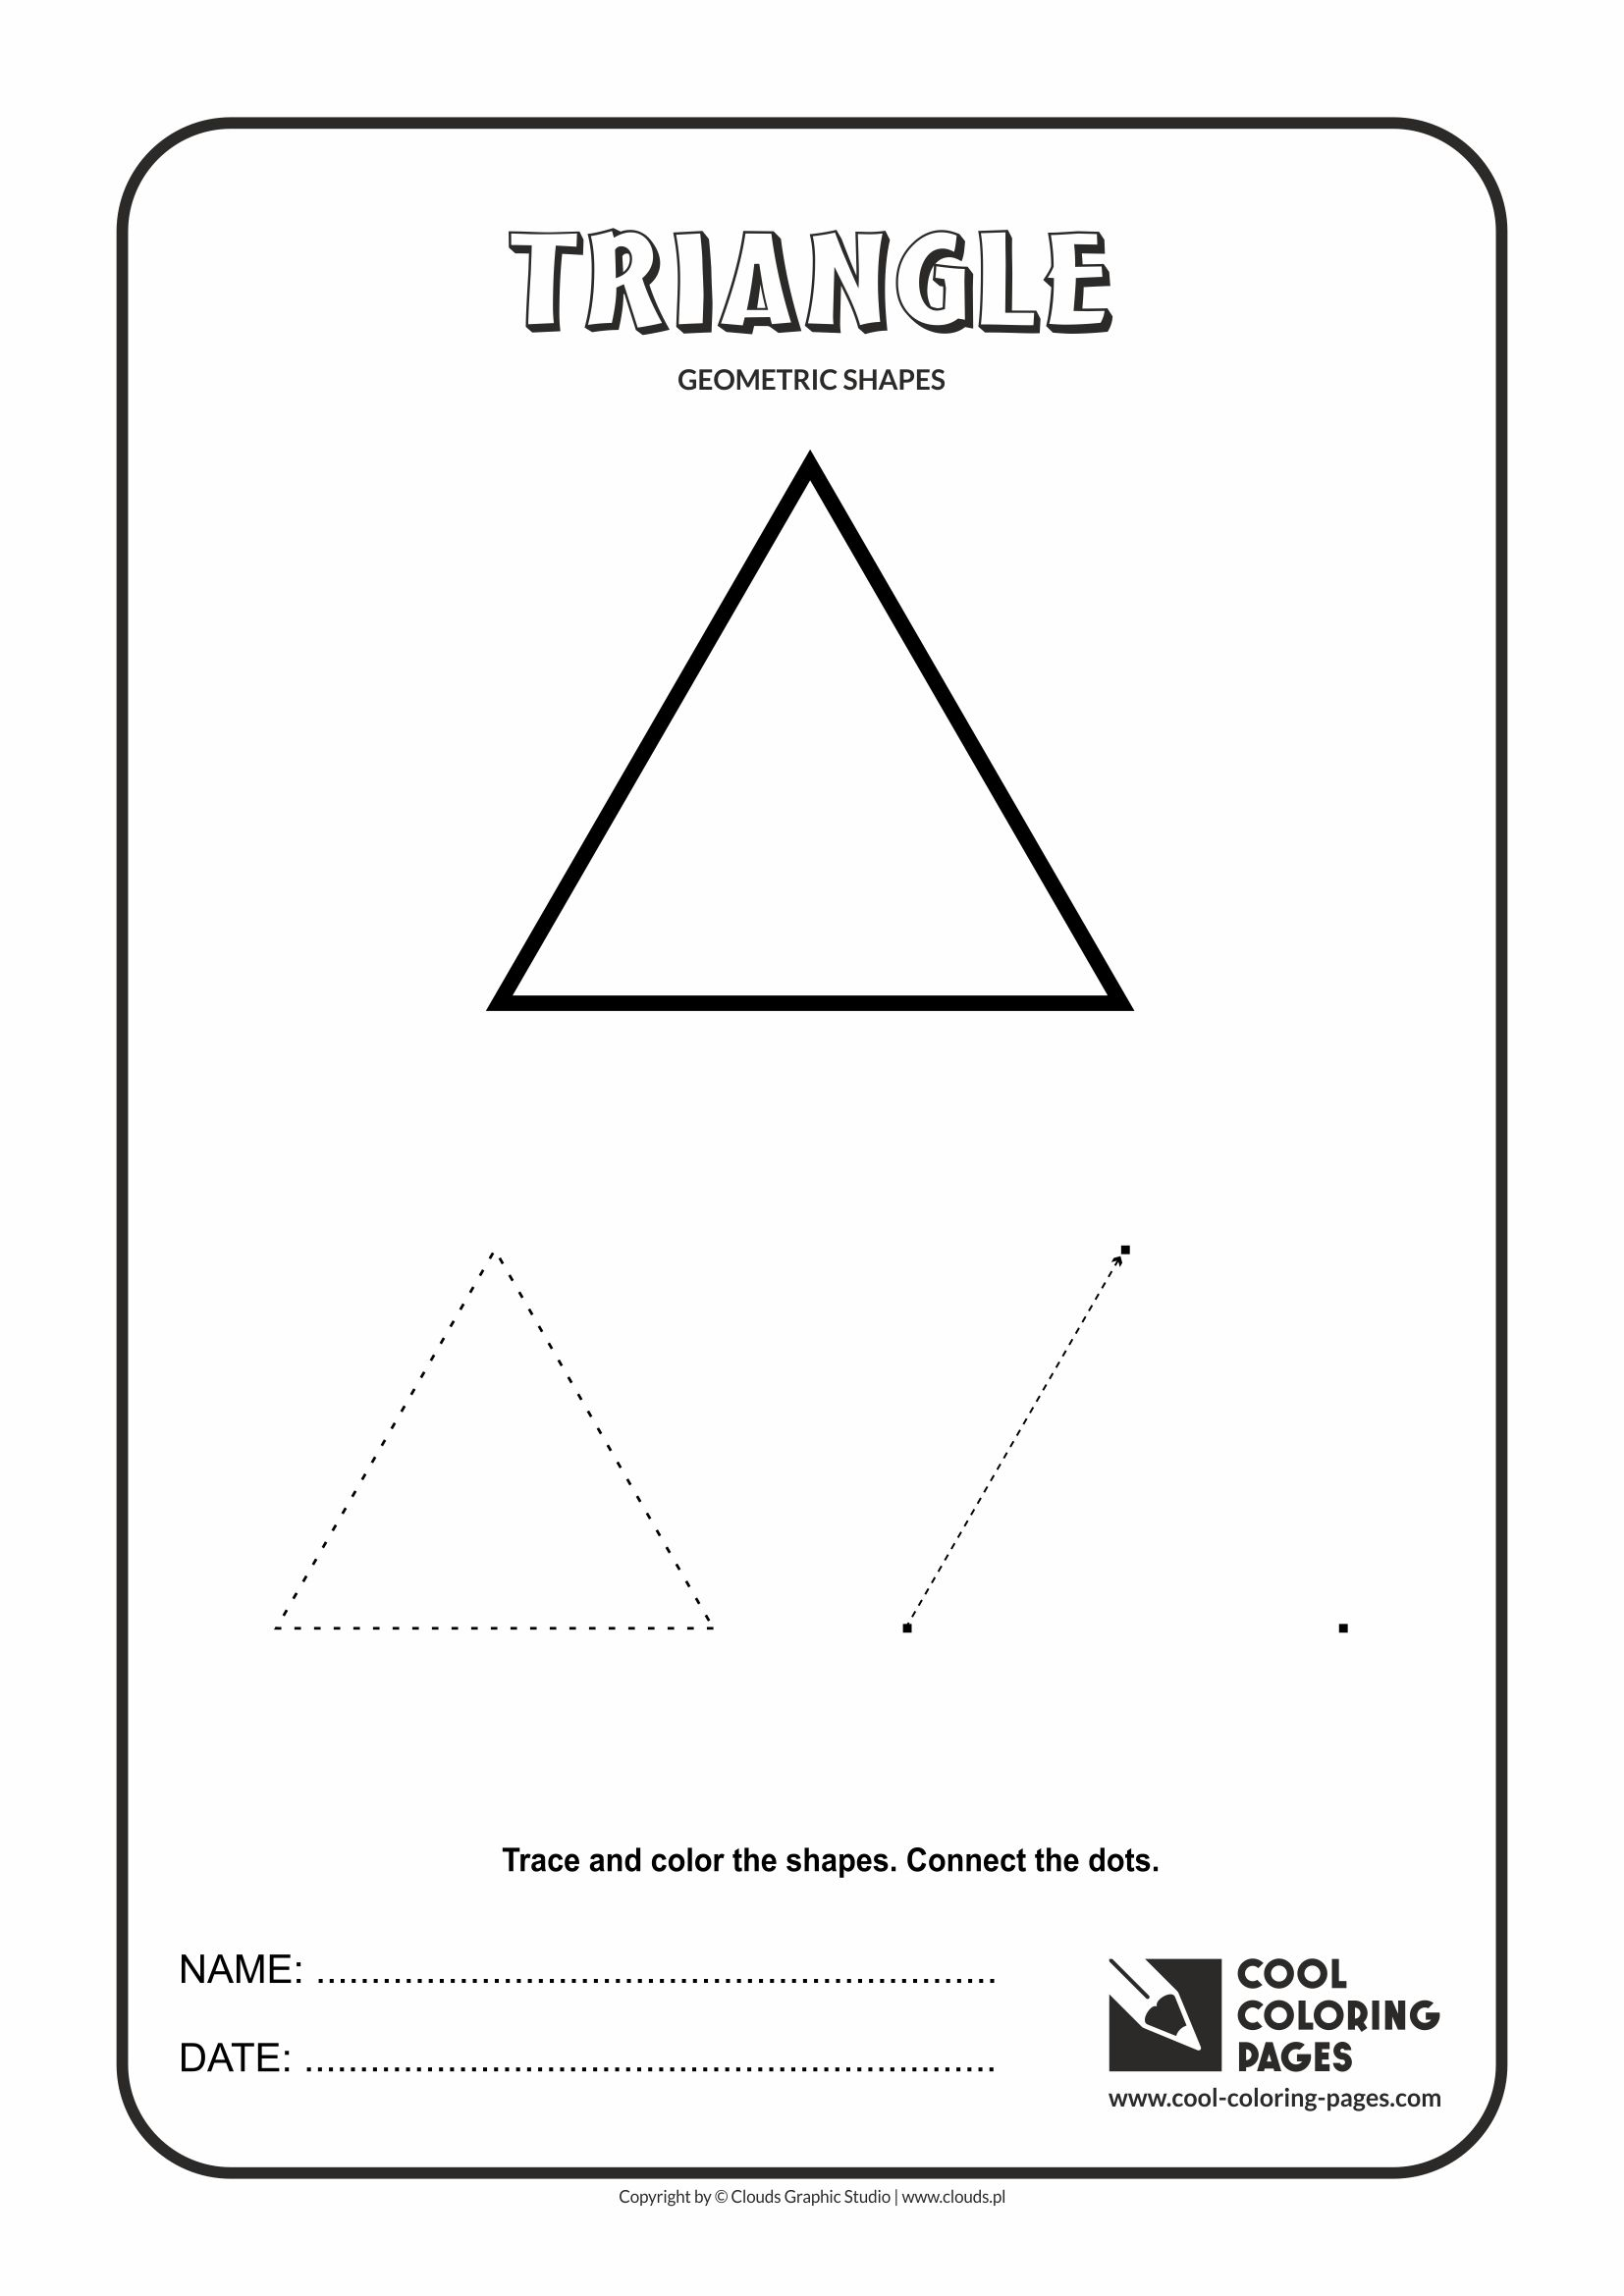 Cool Coloring Pages Geometric Shapes - Cool Coloring Pages | Free ...